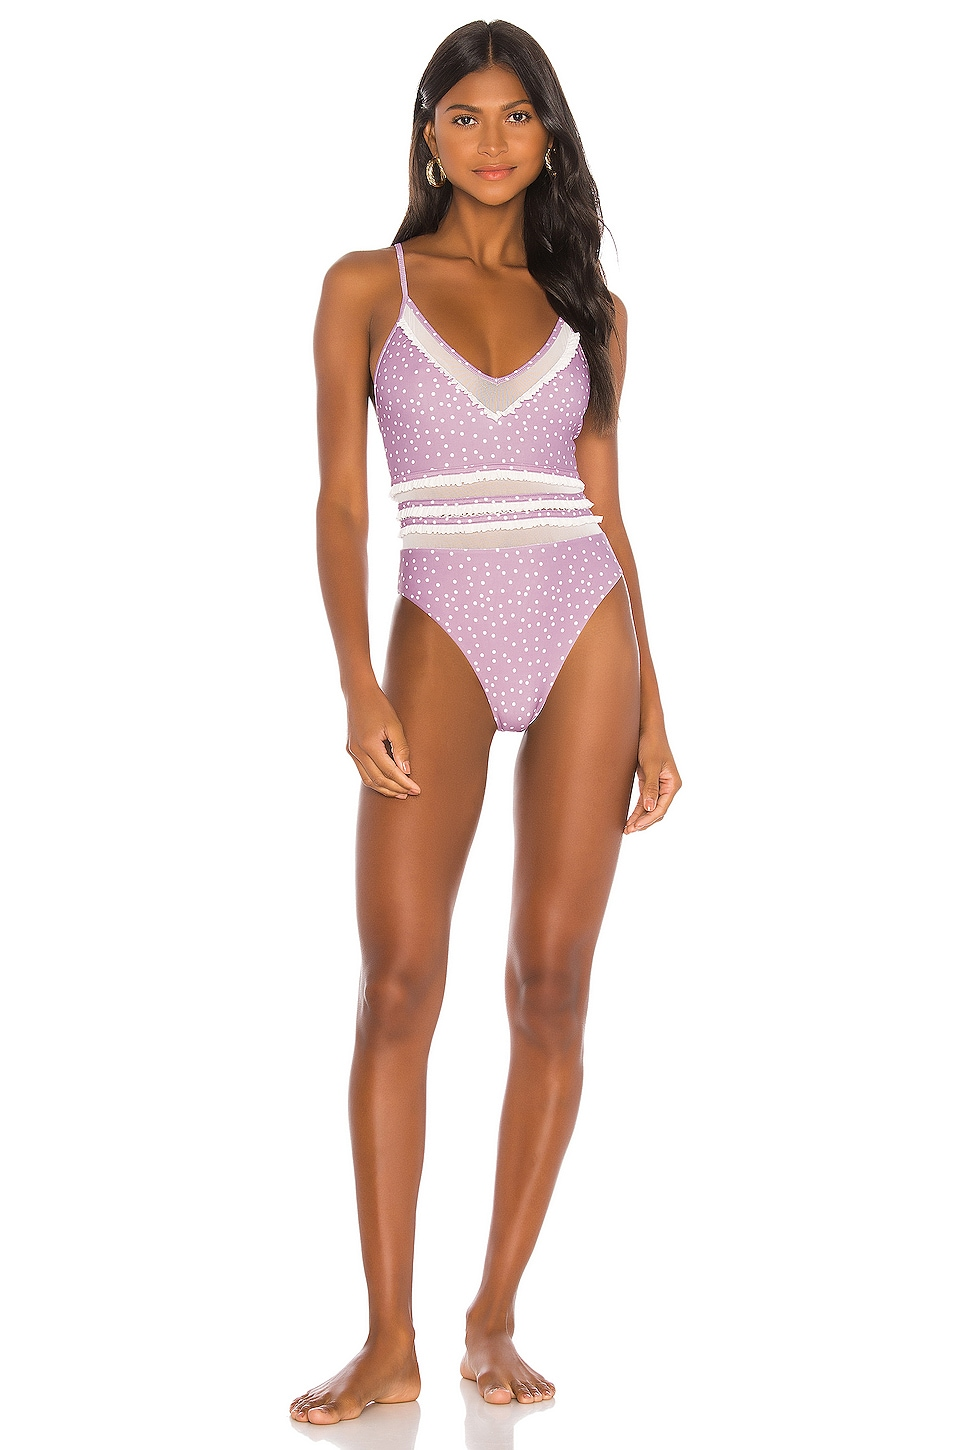 Tularosa Rosey One Piece in Dusty Lavender Dot